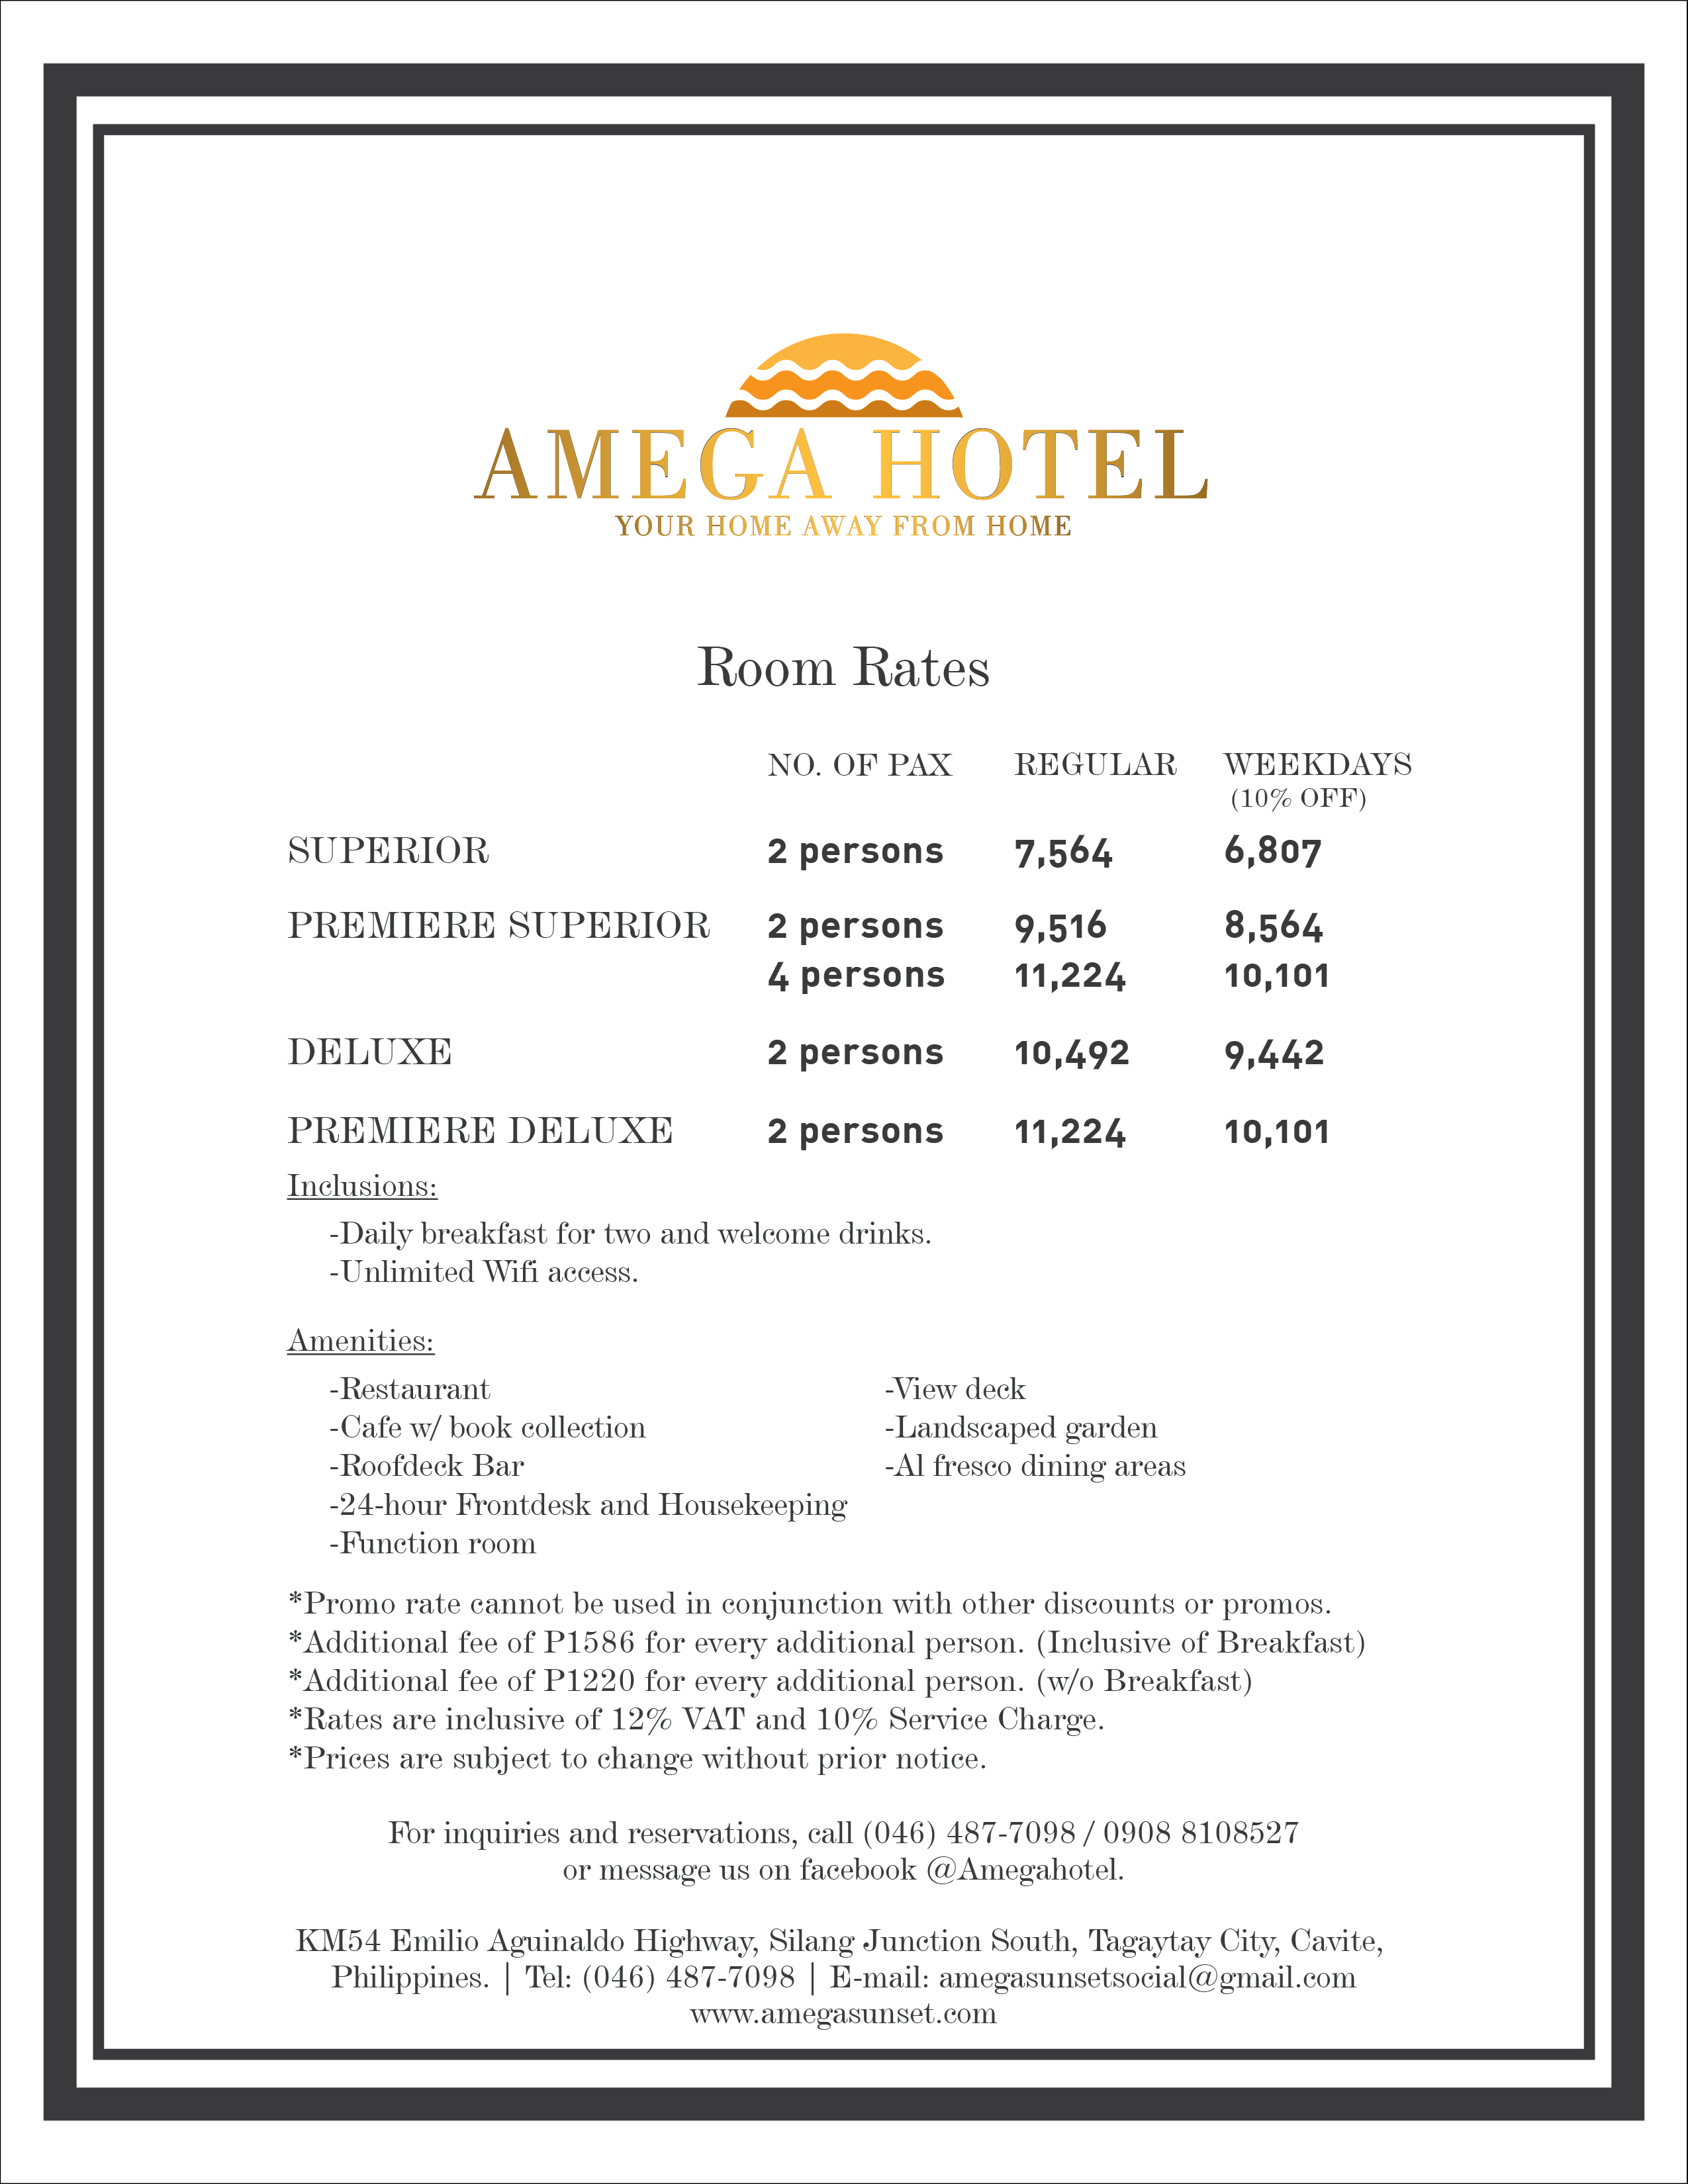 Amega Hotel Room rates Where to stay in tagaytay